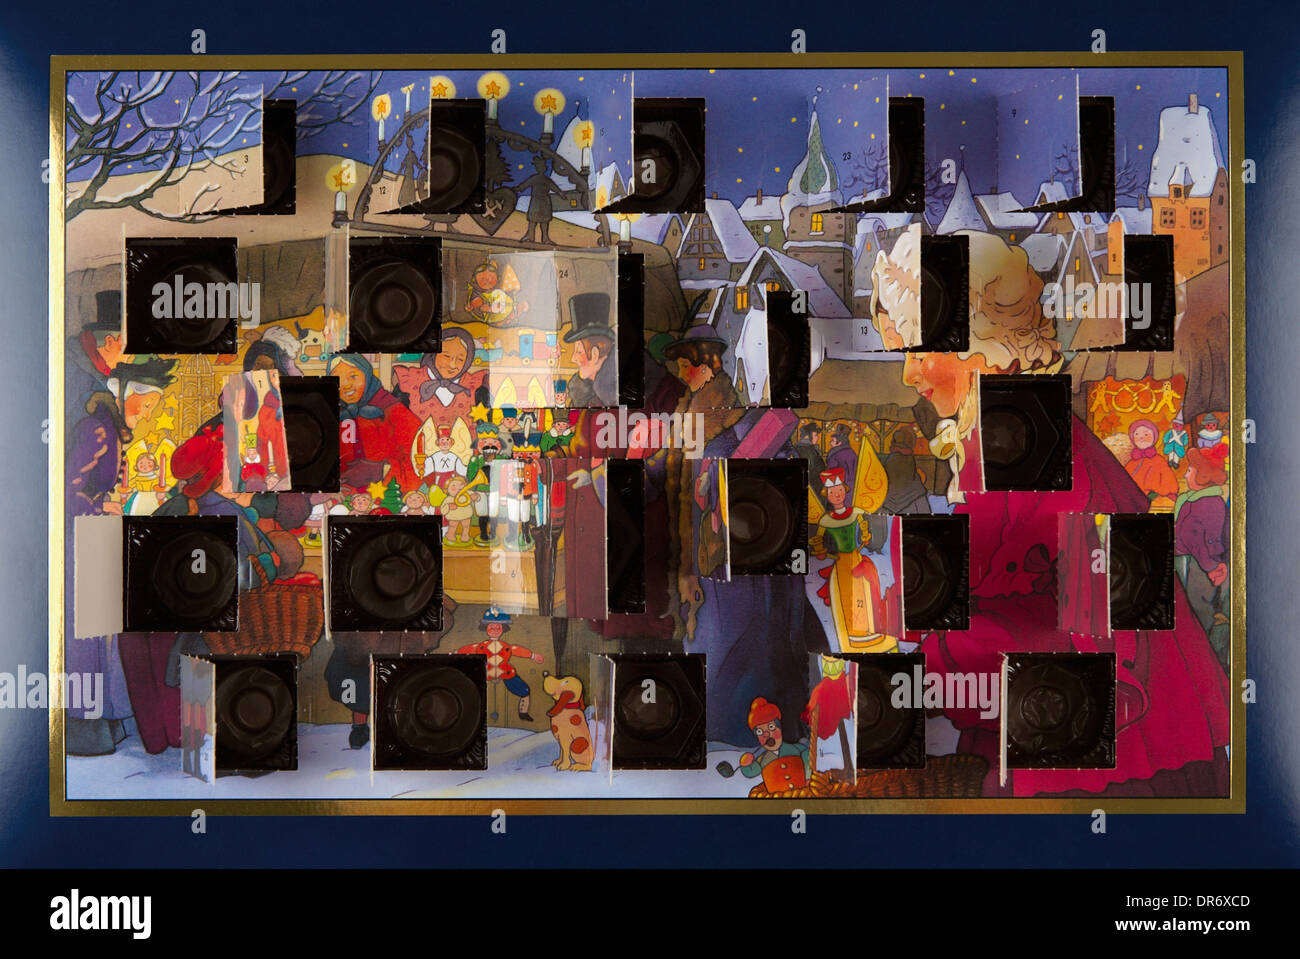 Image result for royalty free images advent calendars